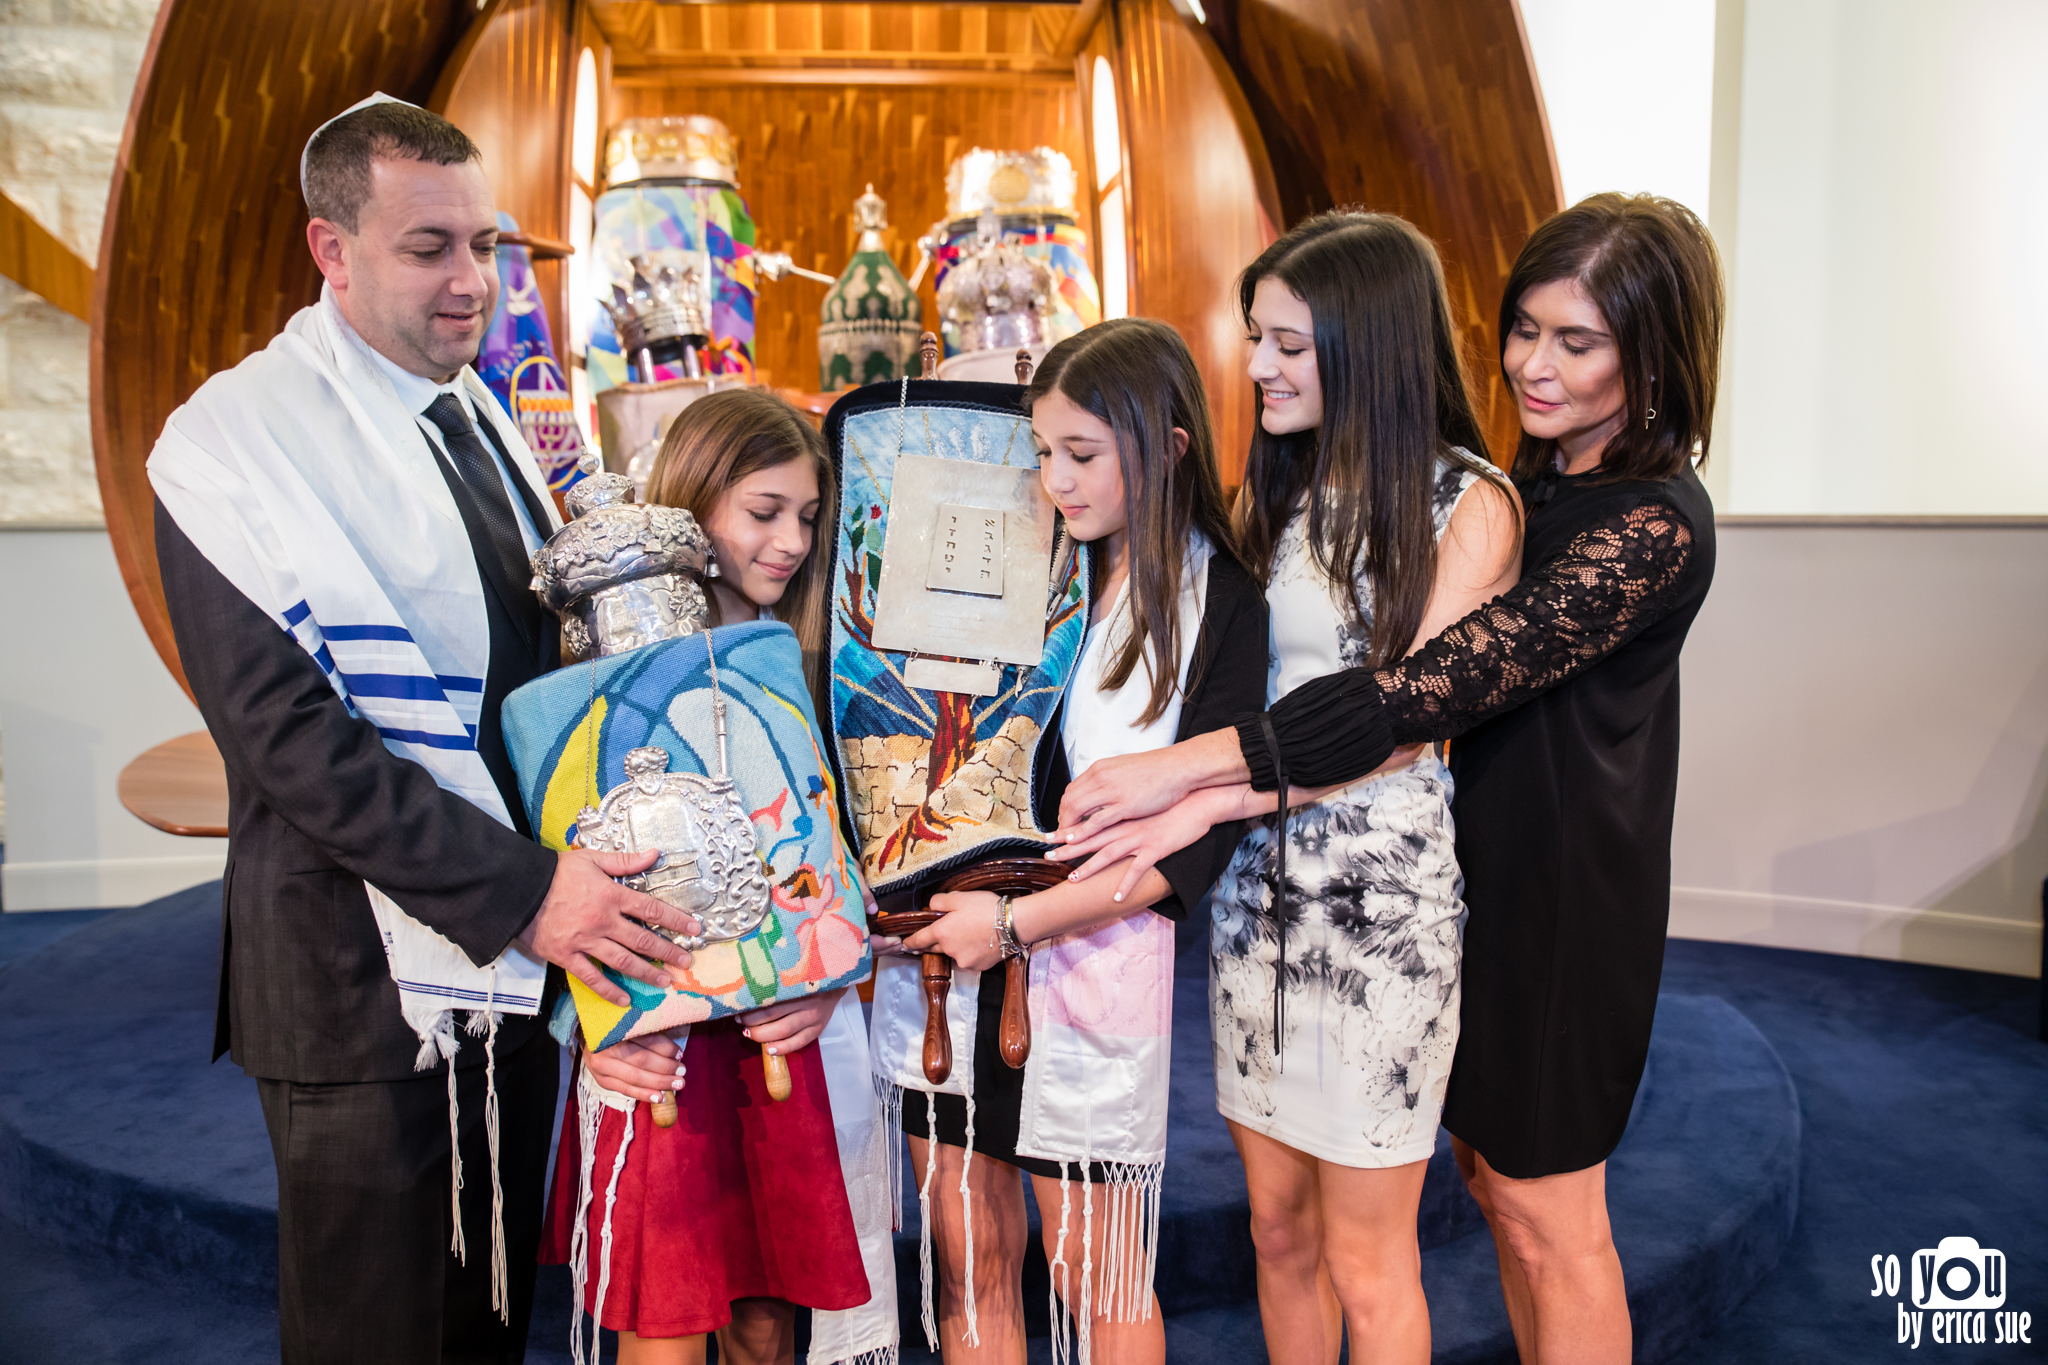 boca-fl-mitzvah-photography-so-you-by-erica-sue-2418.jpg